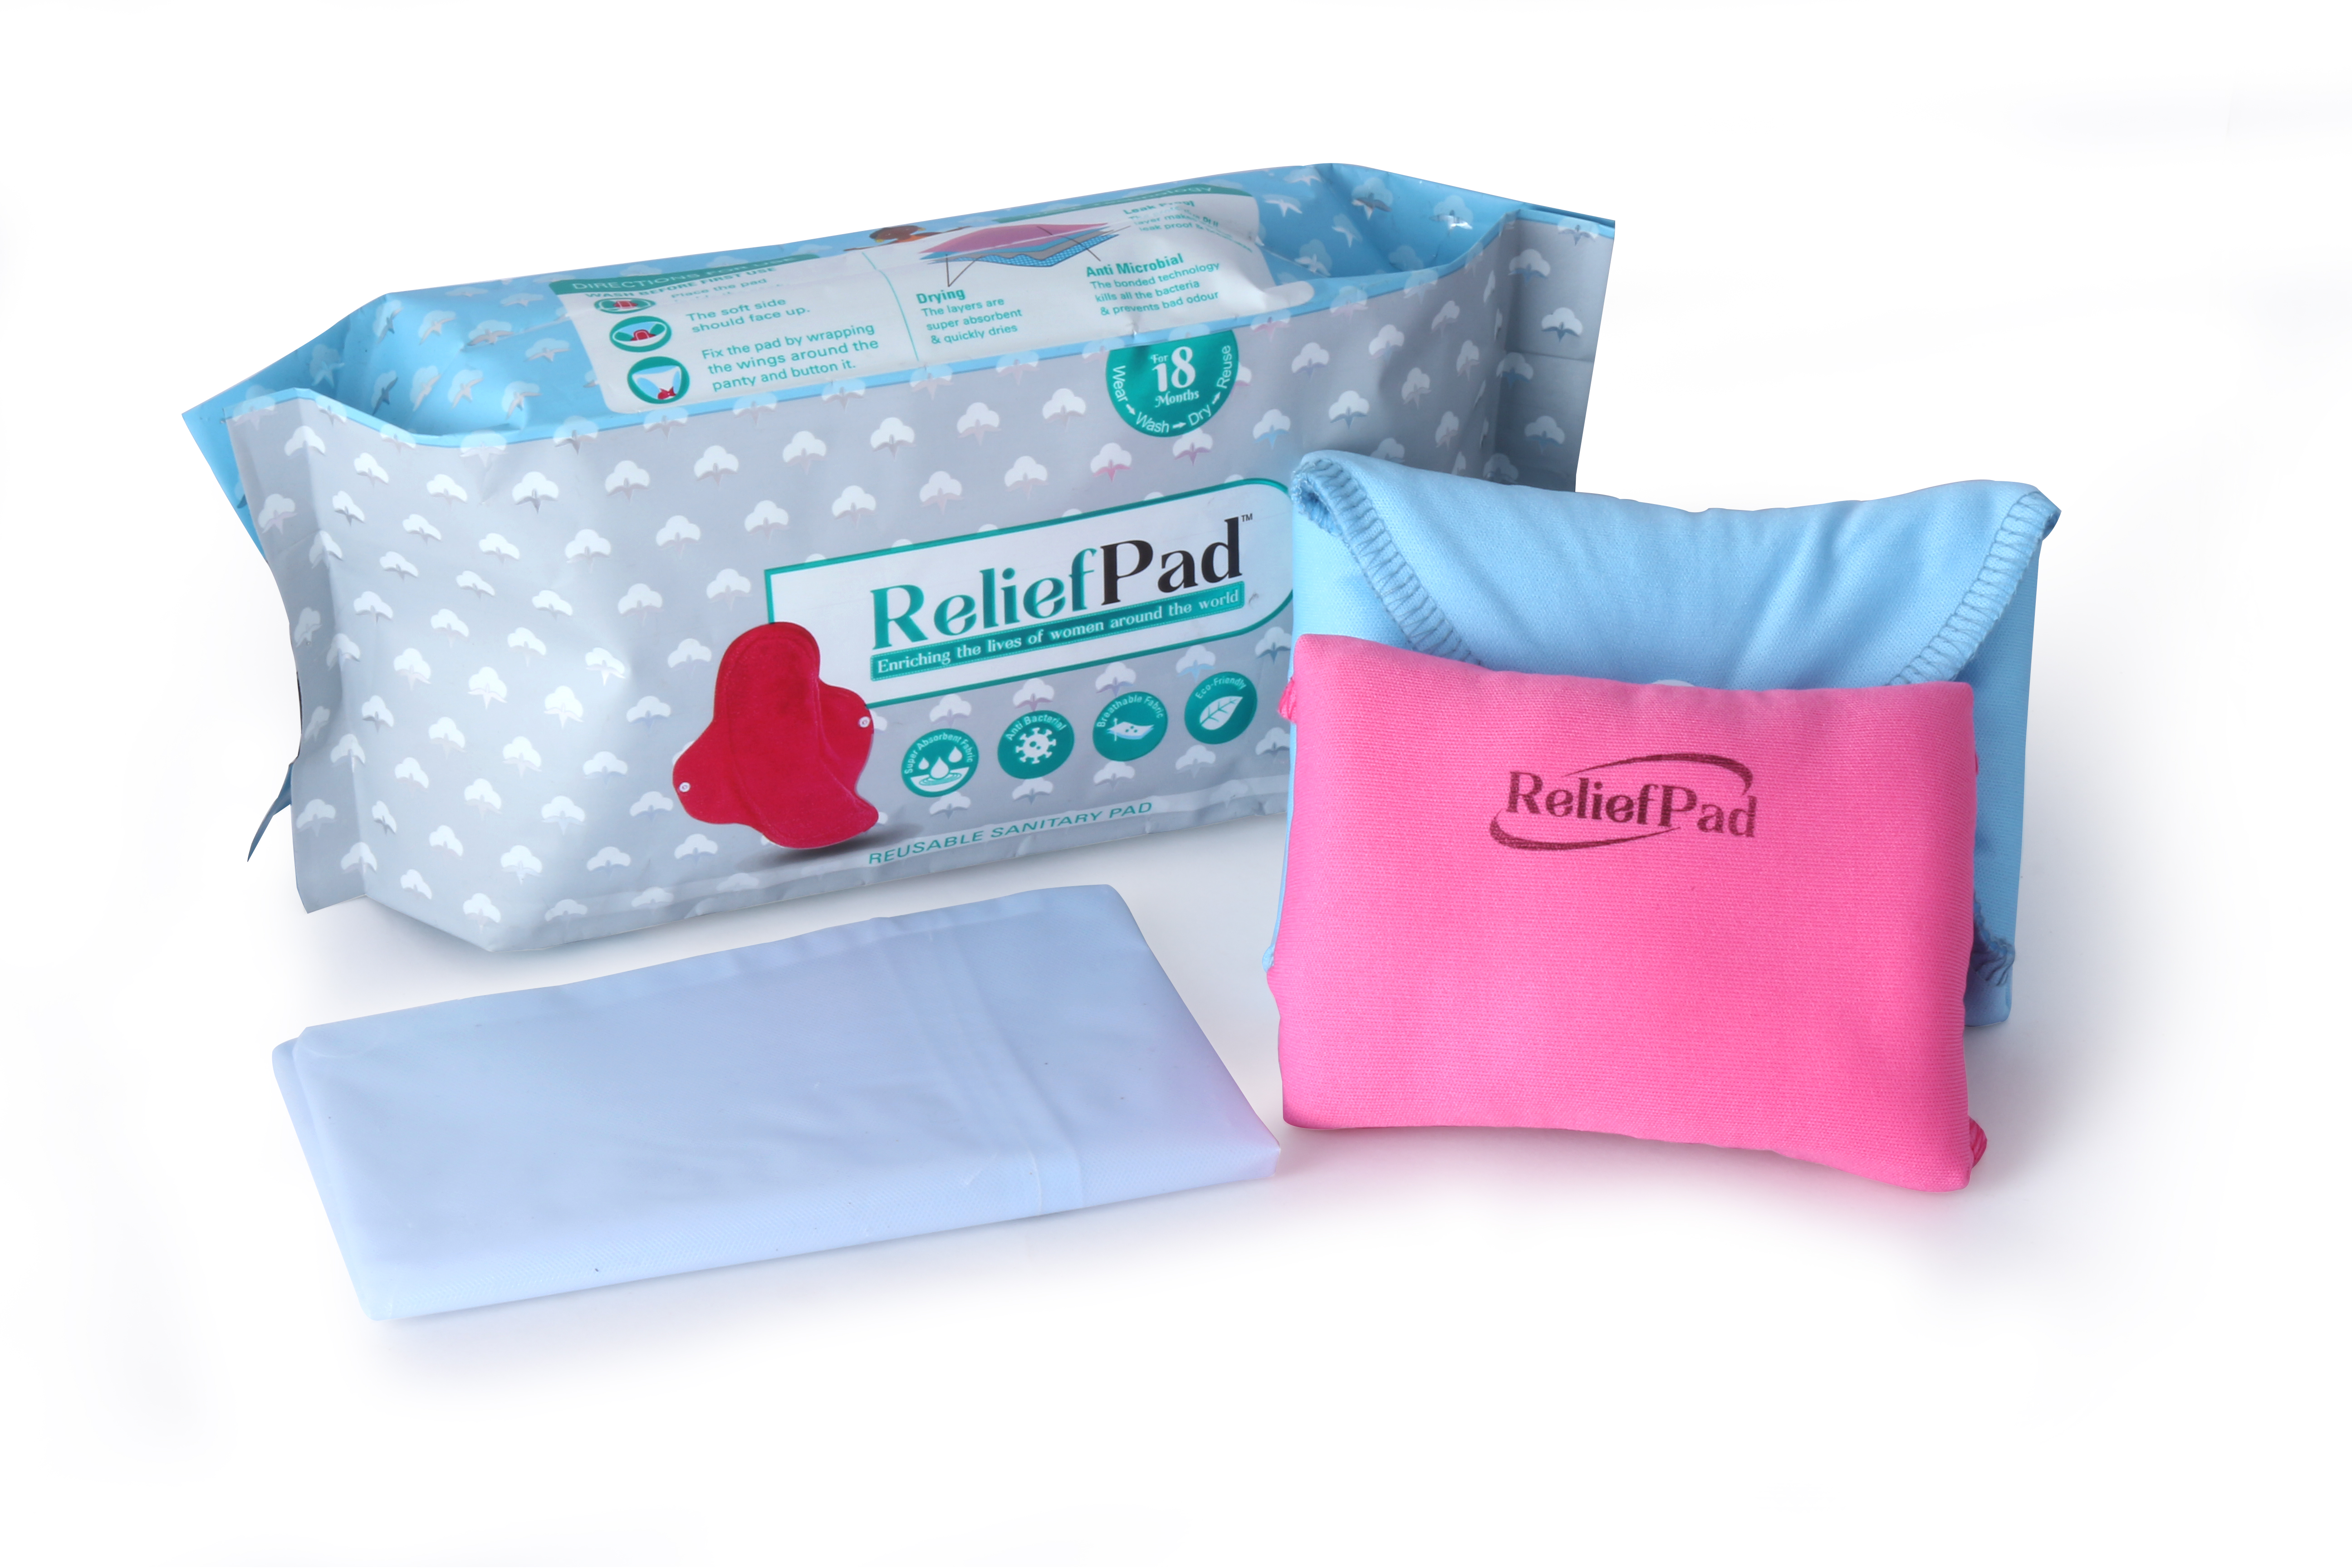 Relief Pad- A Reusable Sanitary Pad